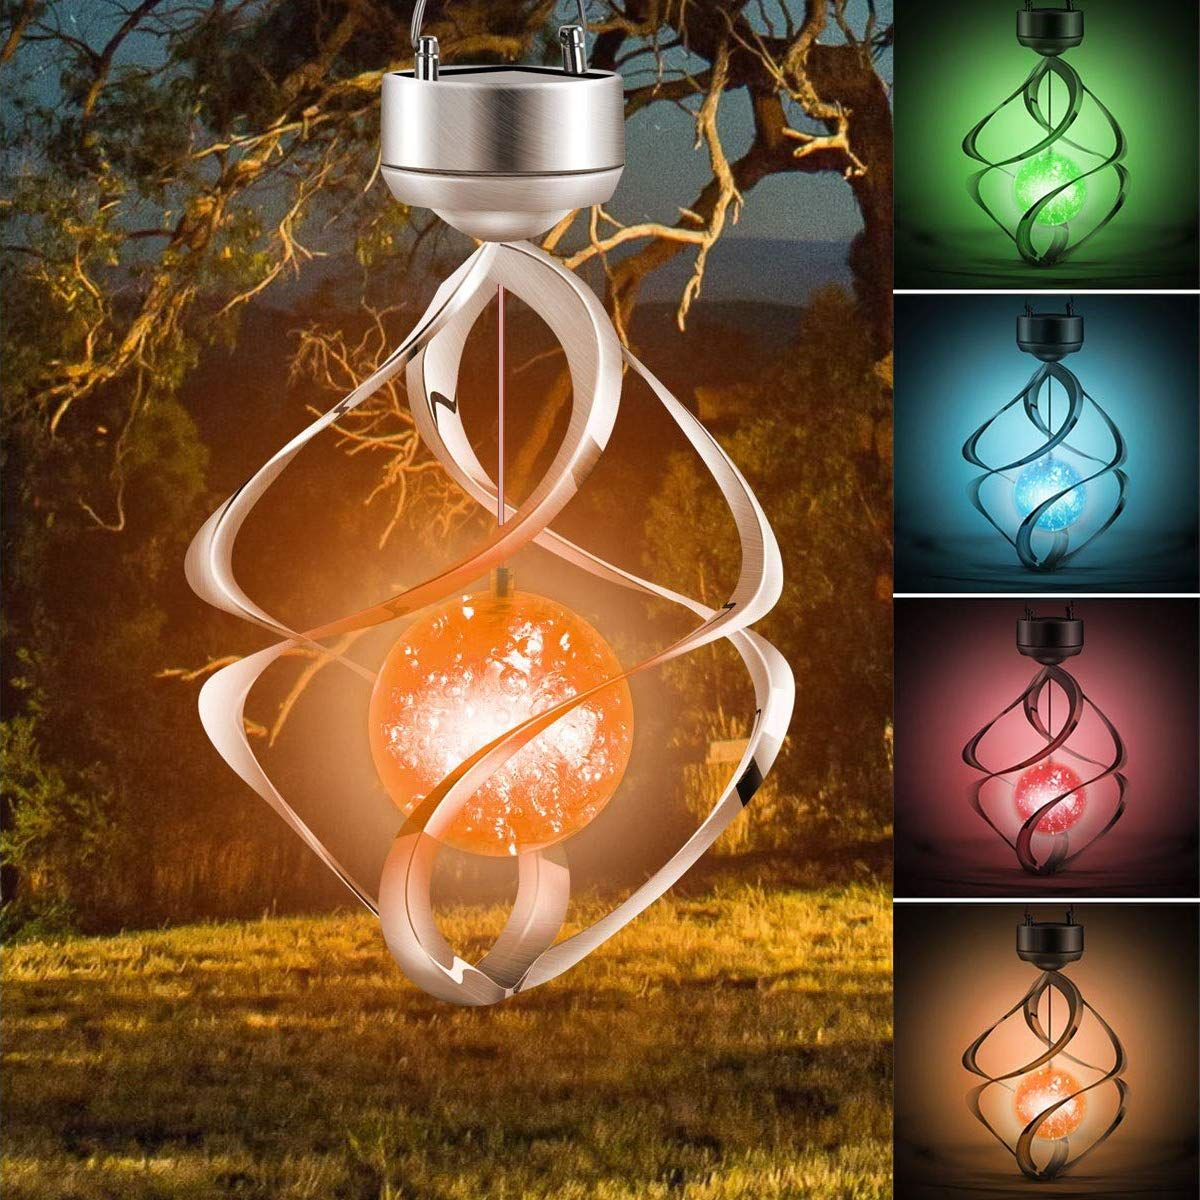 Amwgimi Hanging Solar Lights Outdoor Wind Chimes Lights Led Colour